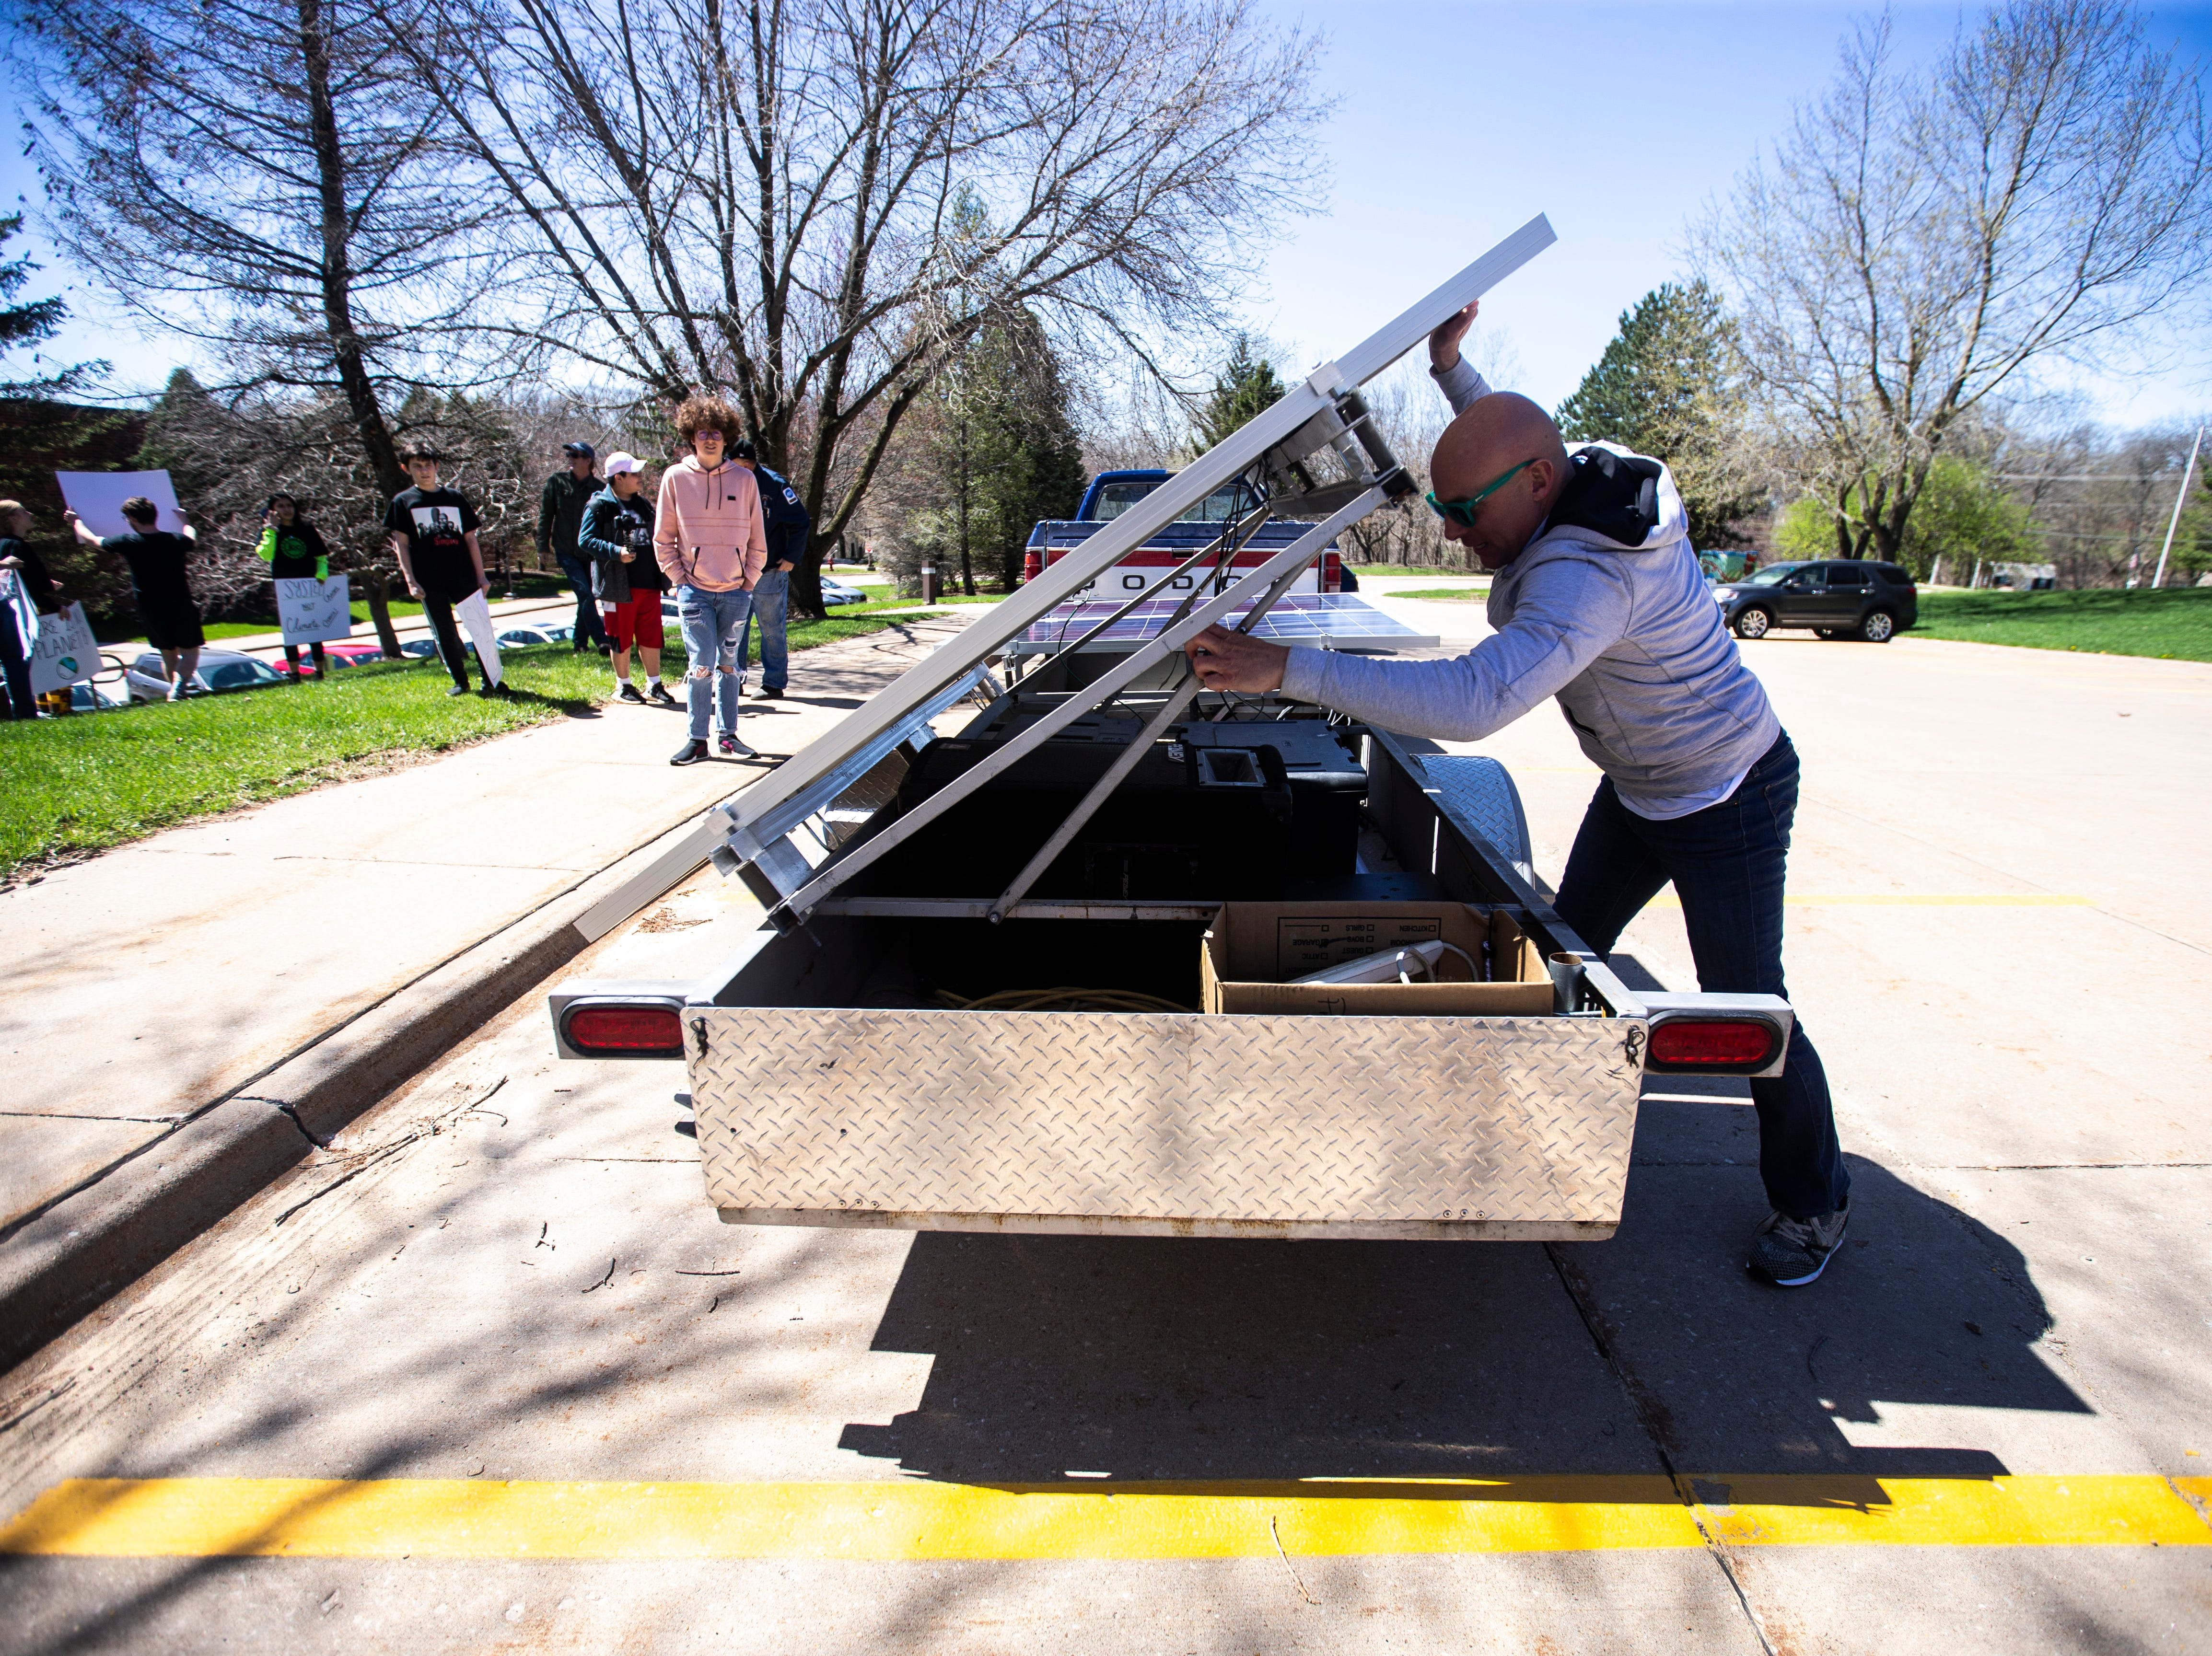 Former Hawkeye, NFL and City High star Tim Dwight sets up two of his solar panels while meeting with students during a weekly walkout demanding solar panels on school buildings, Friday, April 19, 2019, outside the Iowa City Community School District offices along North Dodge Street in Iowa City, Iowa.